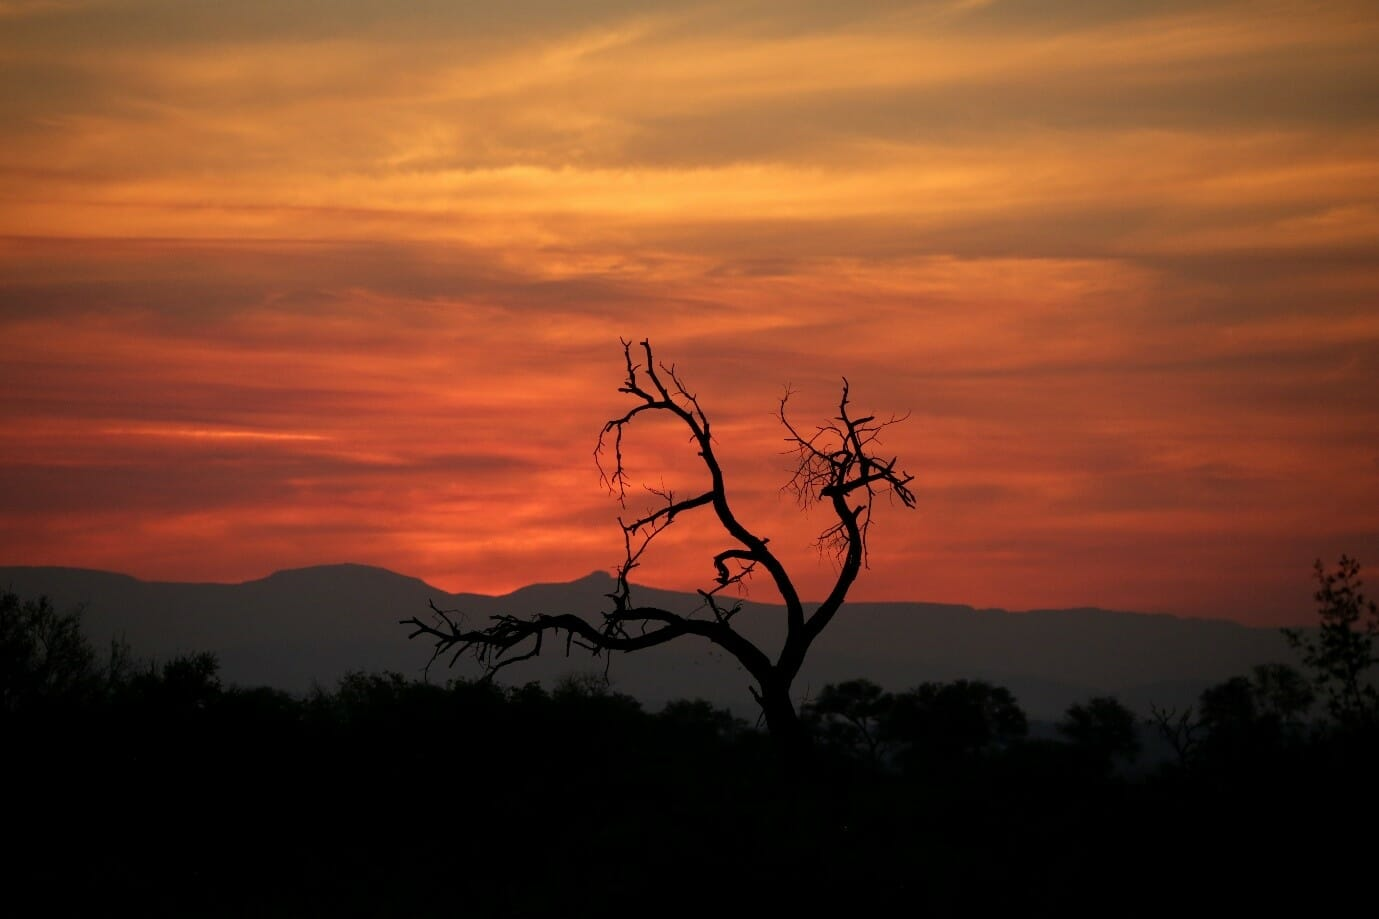 Sunsets in the Kruger National Park are simply incredible. Photo by Heléne Ramackers